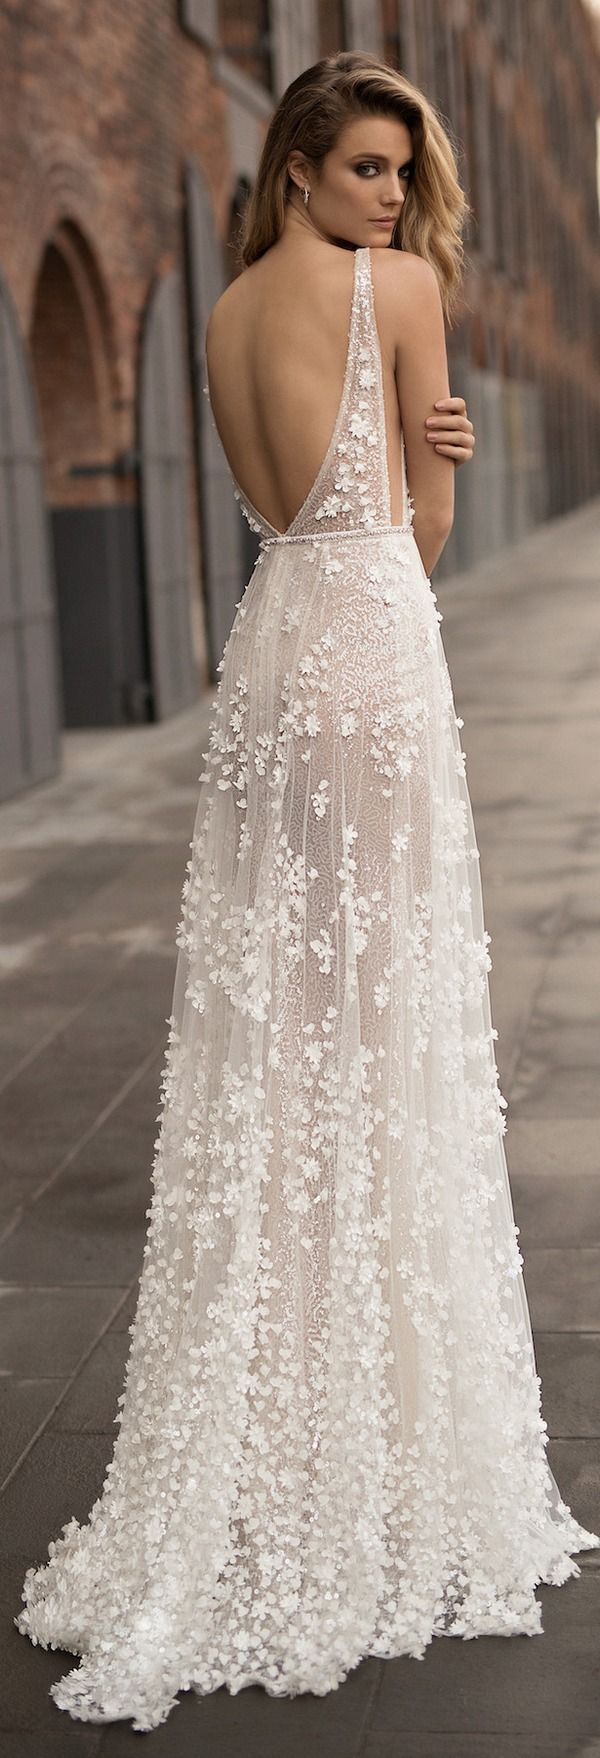 Best 25  Wedding dresses ideas on Pinterest | Dream wedding ...